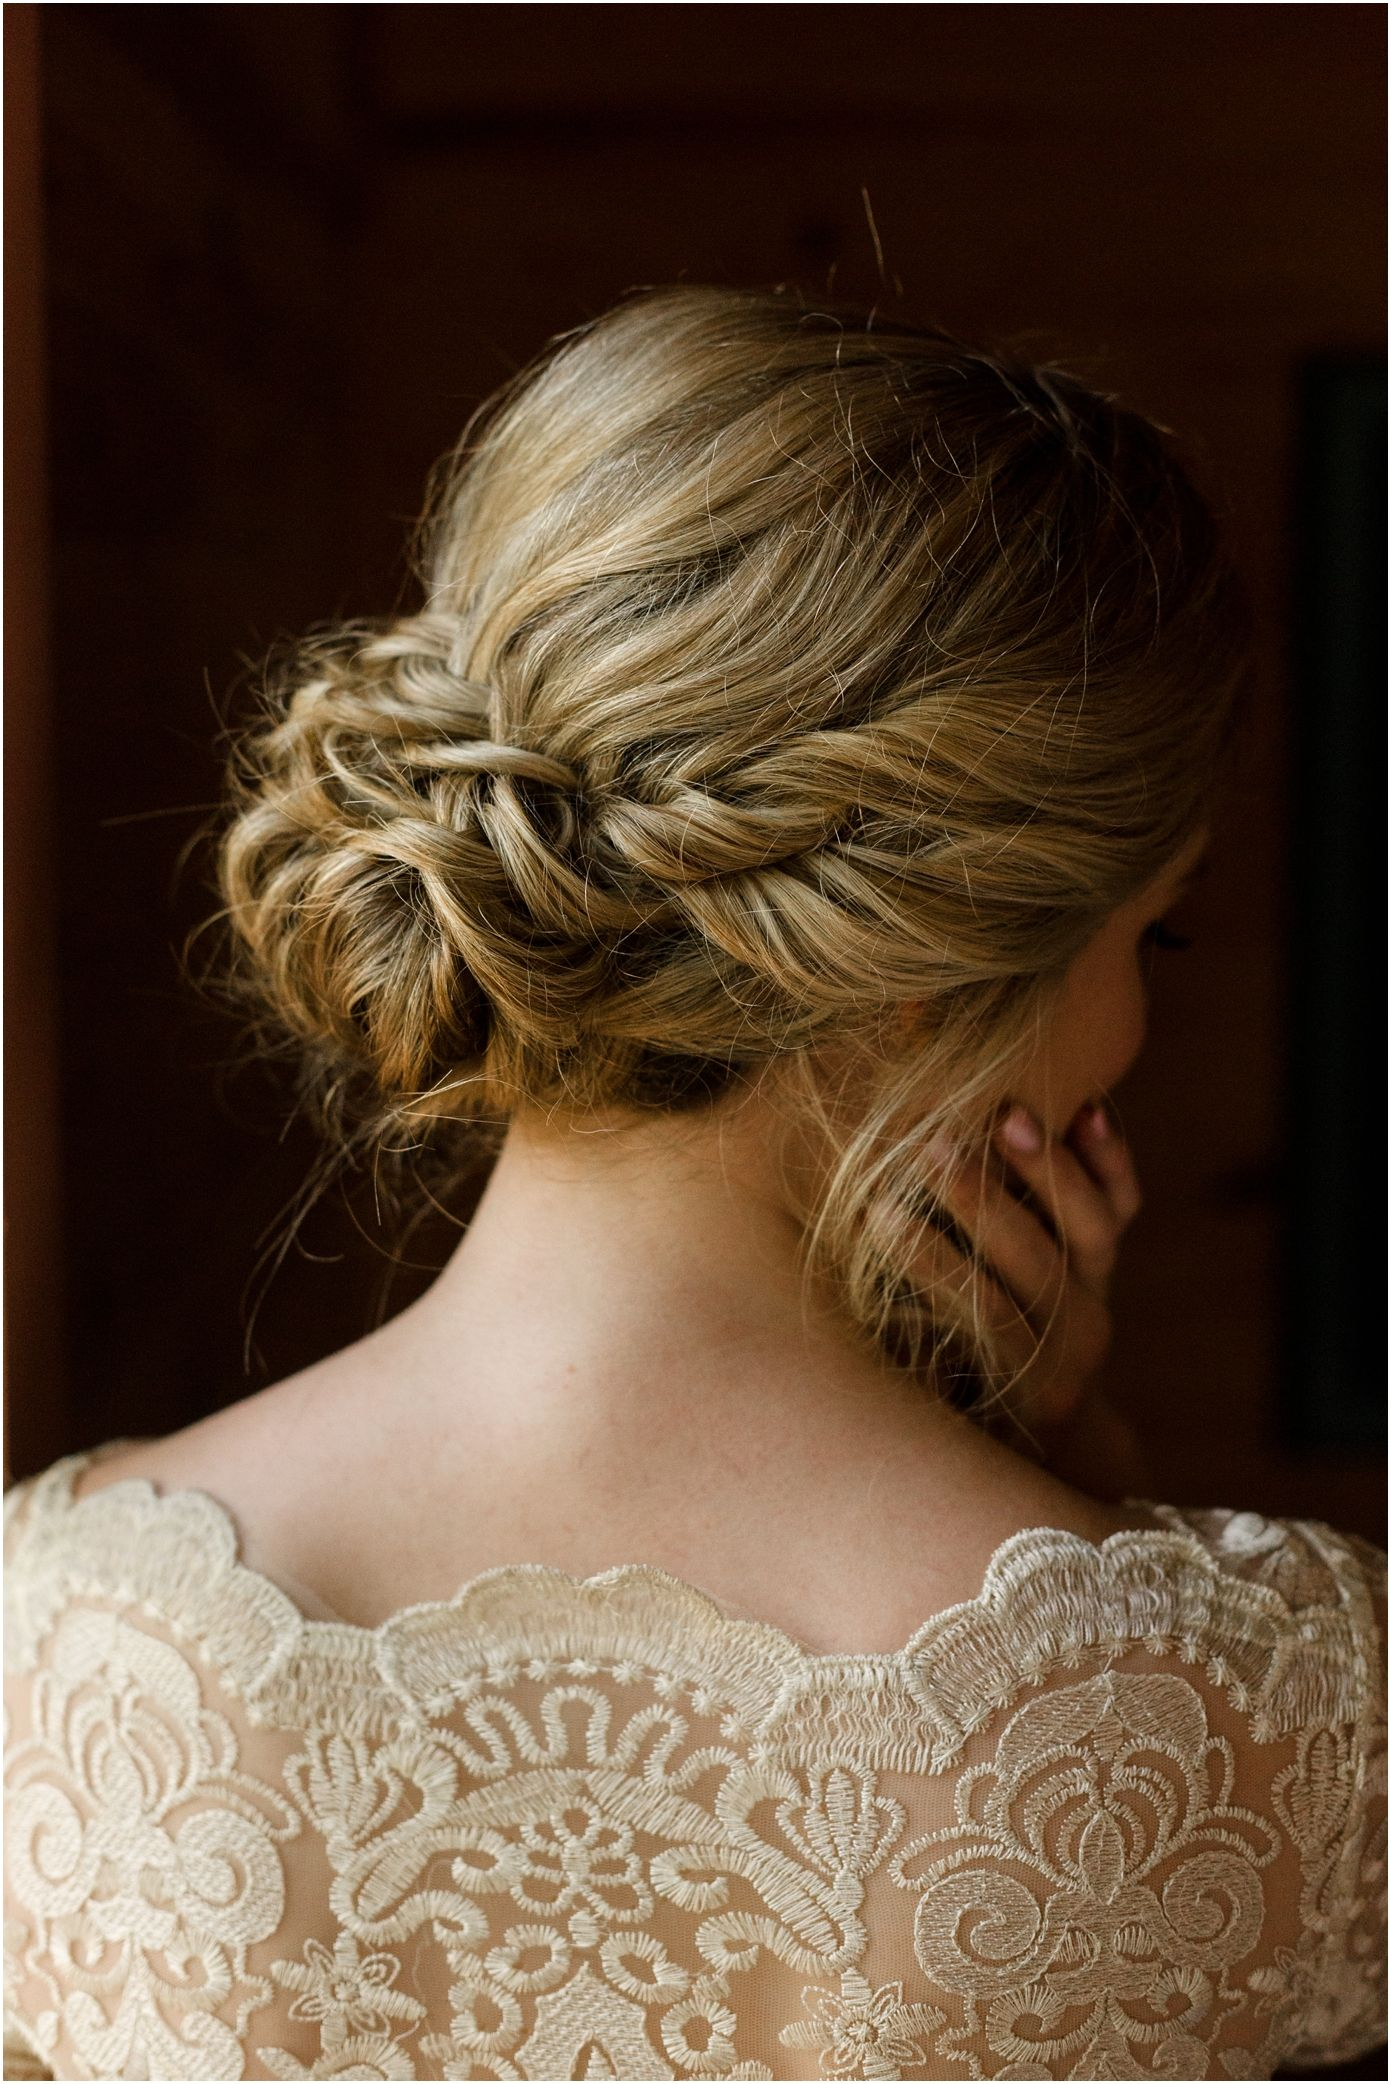 love this wedding hair for blondes! twists with a low curly